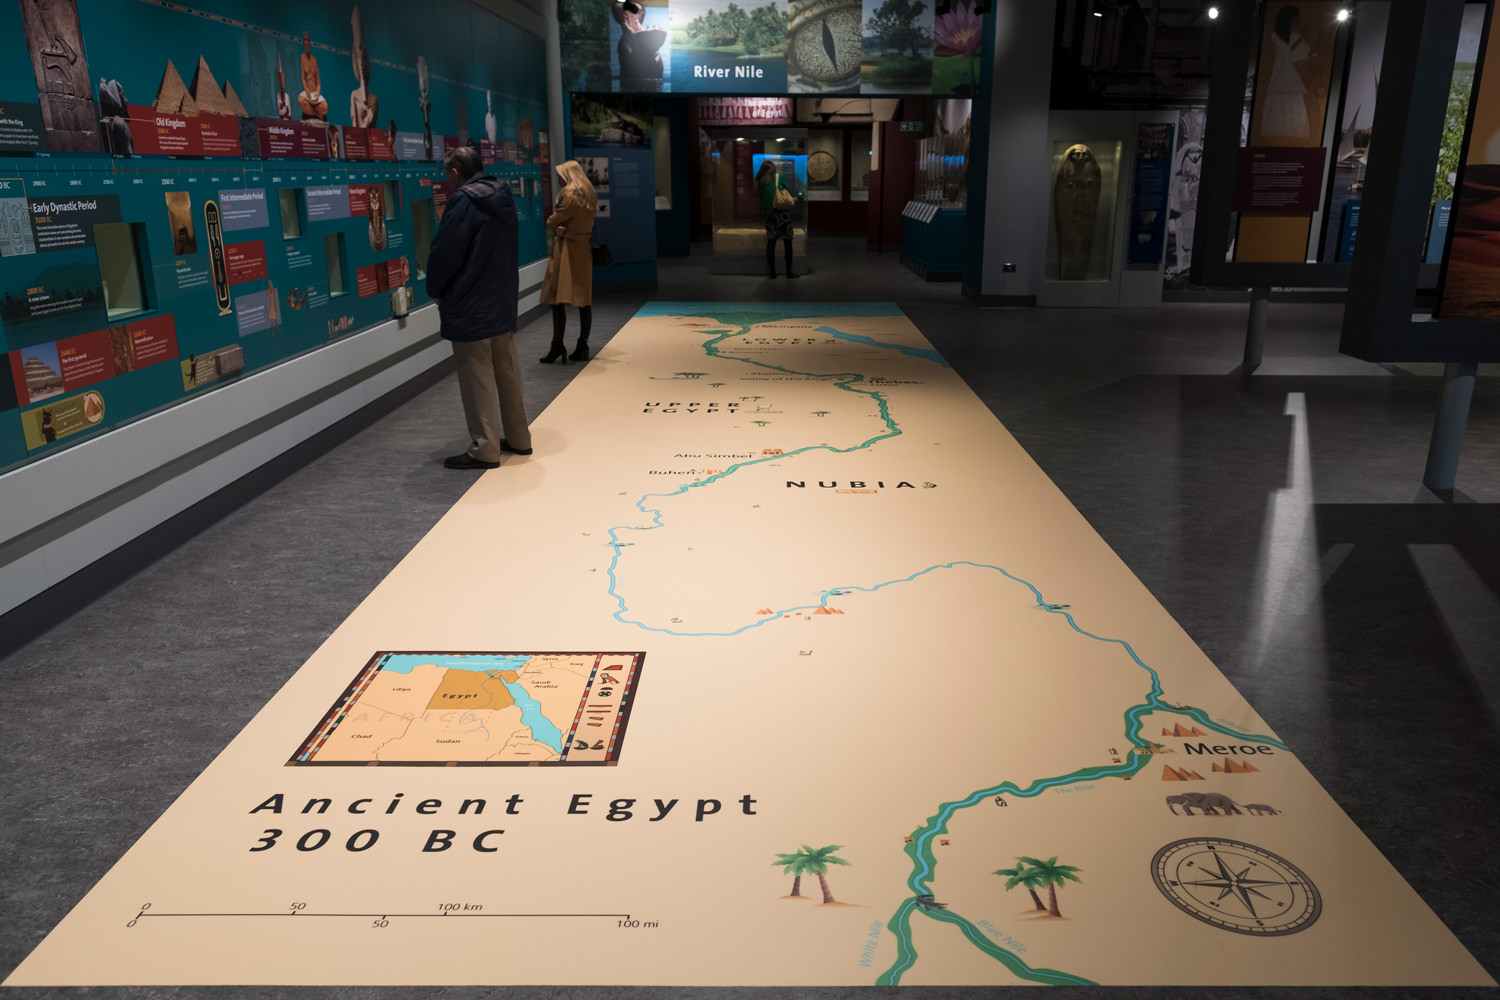 A giant map of ancient Egypt and Nubia up to 300 BC on the floor, which can be walked over by visitors